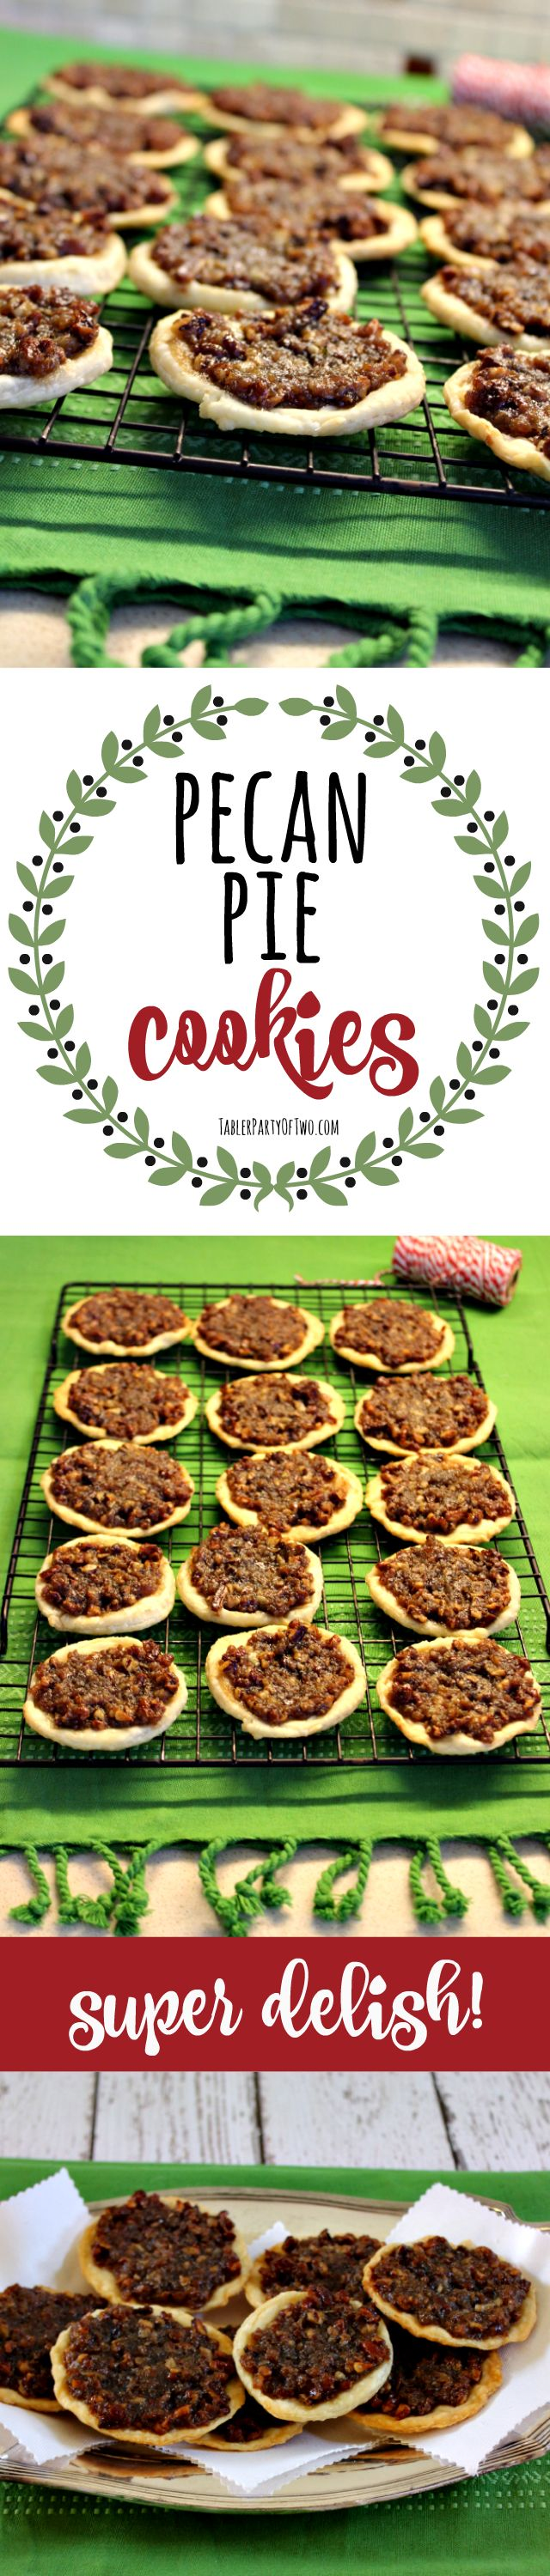 Pecan Pie Cookies - so amazing! Like indulging in a mini pecan pie for one. TablerPartyofTwo.com